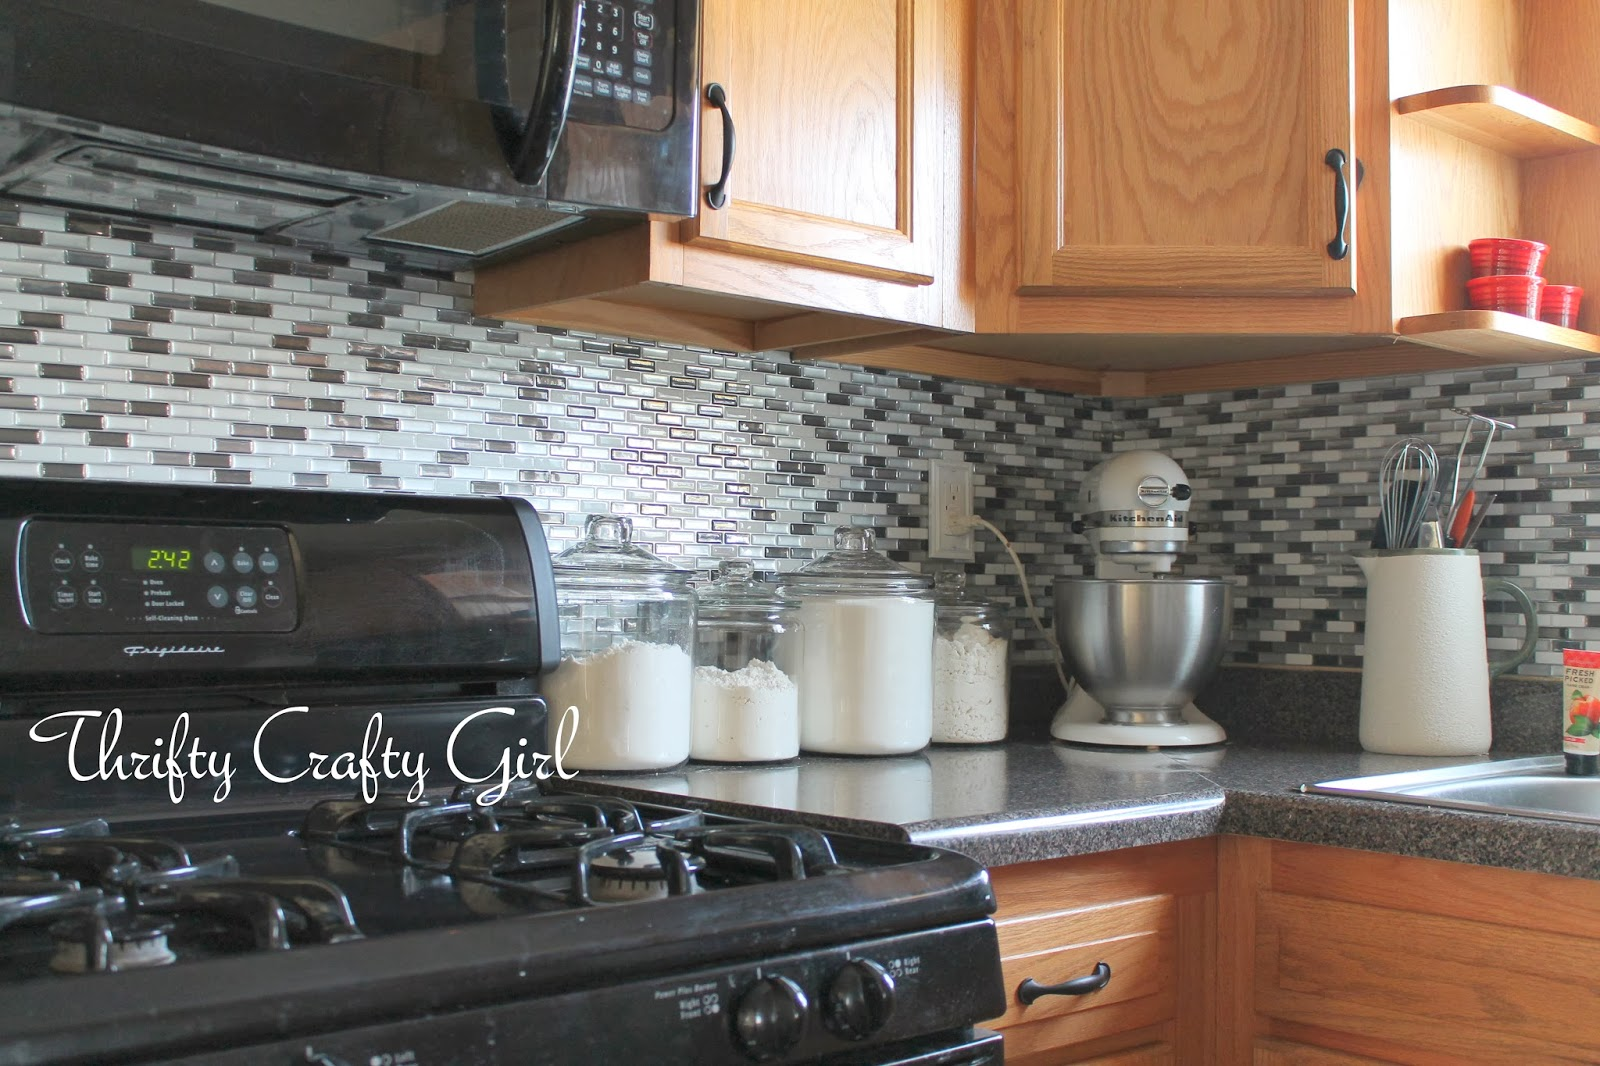 easy to do kitchen backsplash cabinets pittsburgh thrifty crafty girl with smart tiles